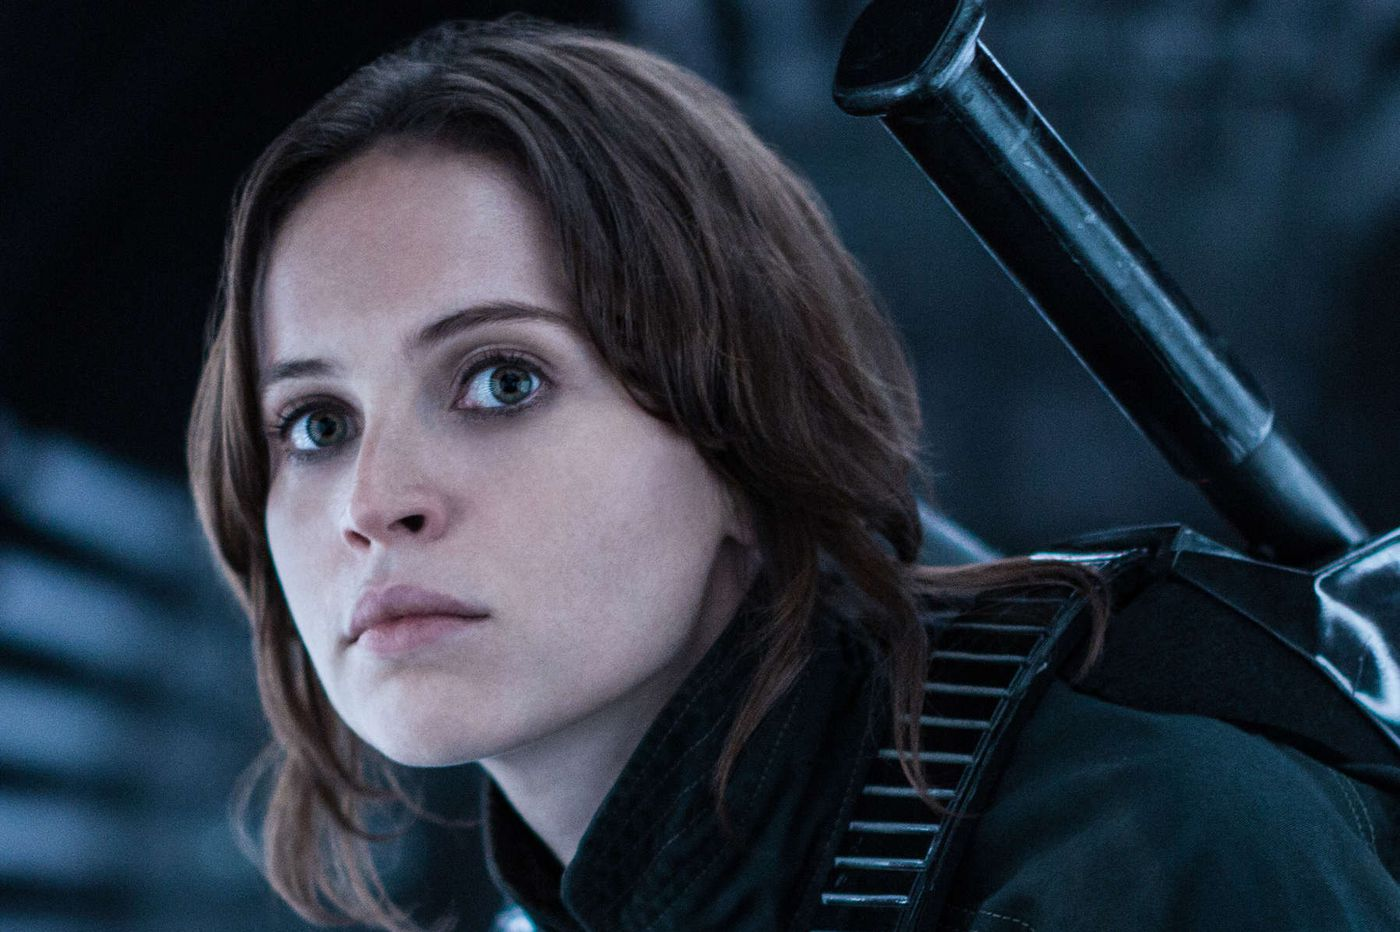 Pretentious 'Rogue One' crashes and burns